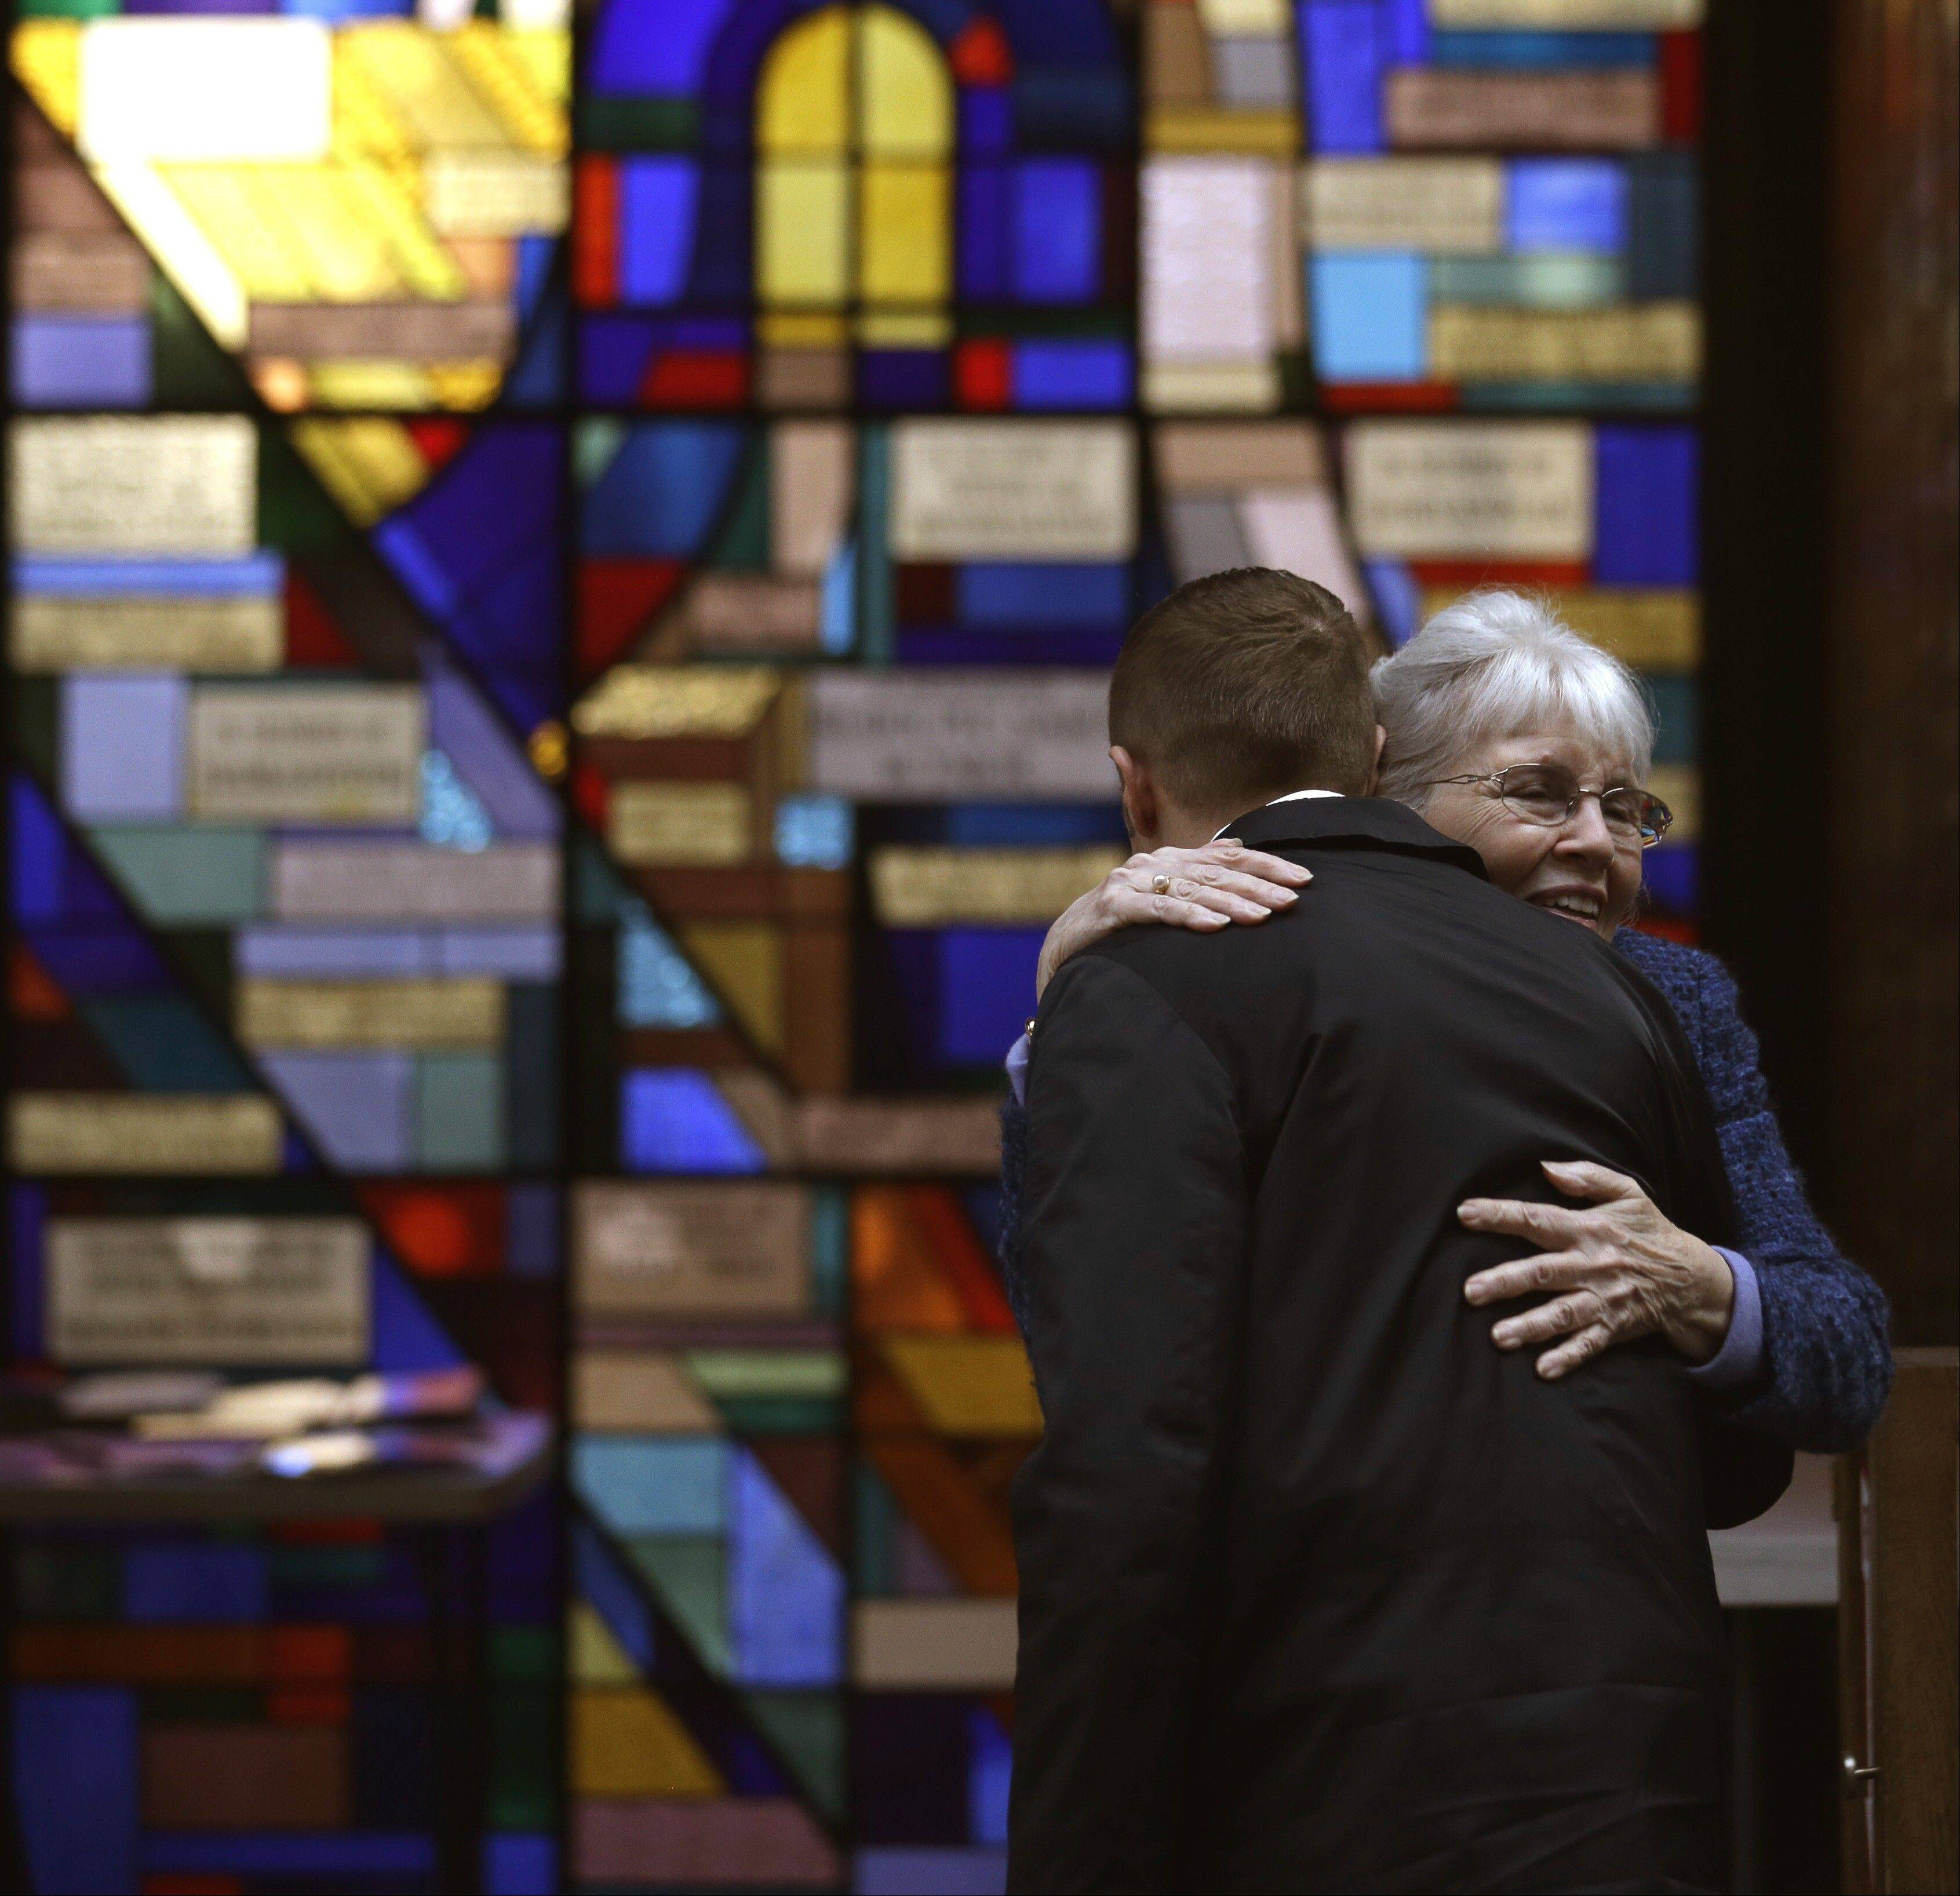 Sue Haff, right, a member of Trinity Episcopal Church in Boston, greets a man arriving at Temple Israel, which allowed the Trinity congregation to hold its Sunday service there.